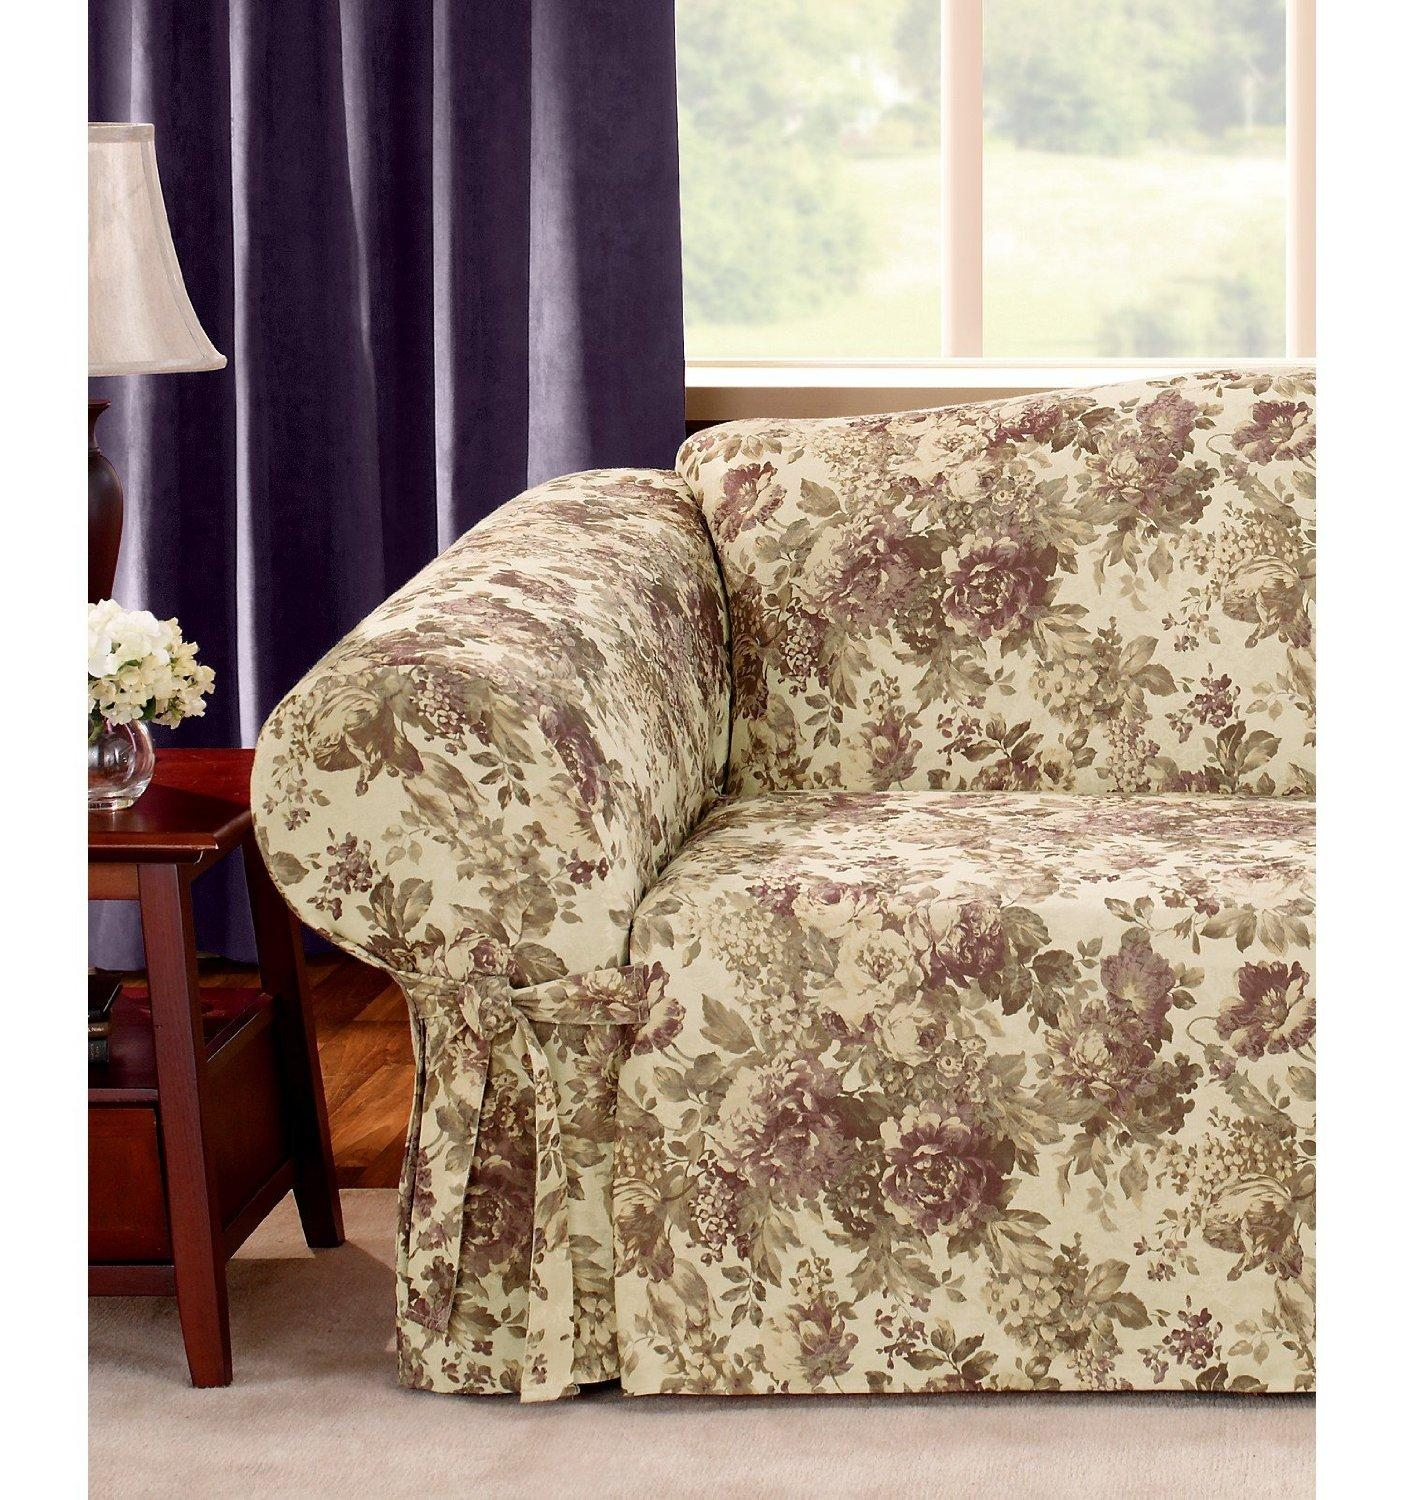 Sofas Center : Fashion Font Floral Sofa Cover Tight Wrap Stretchy Regarding Floral Sofa Slipcovers (Image 17 of 20)